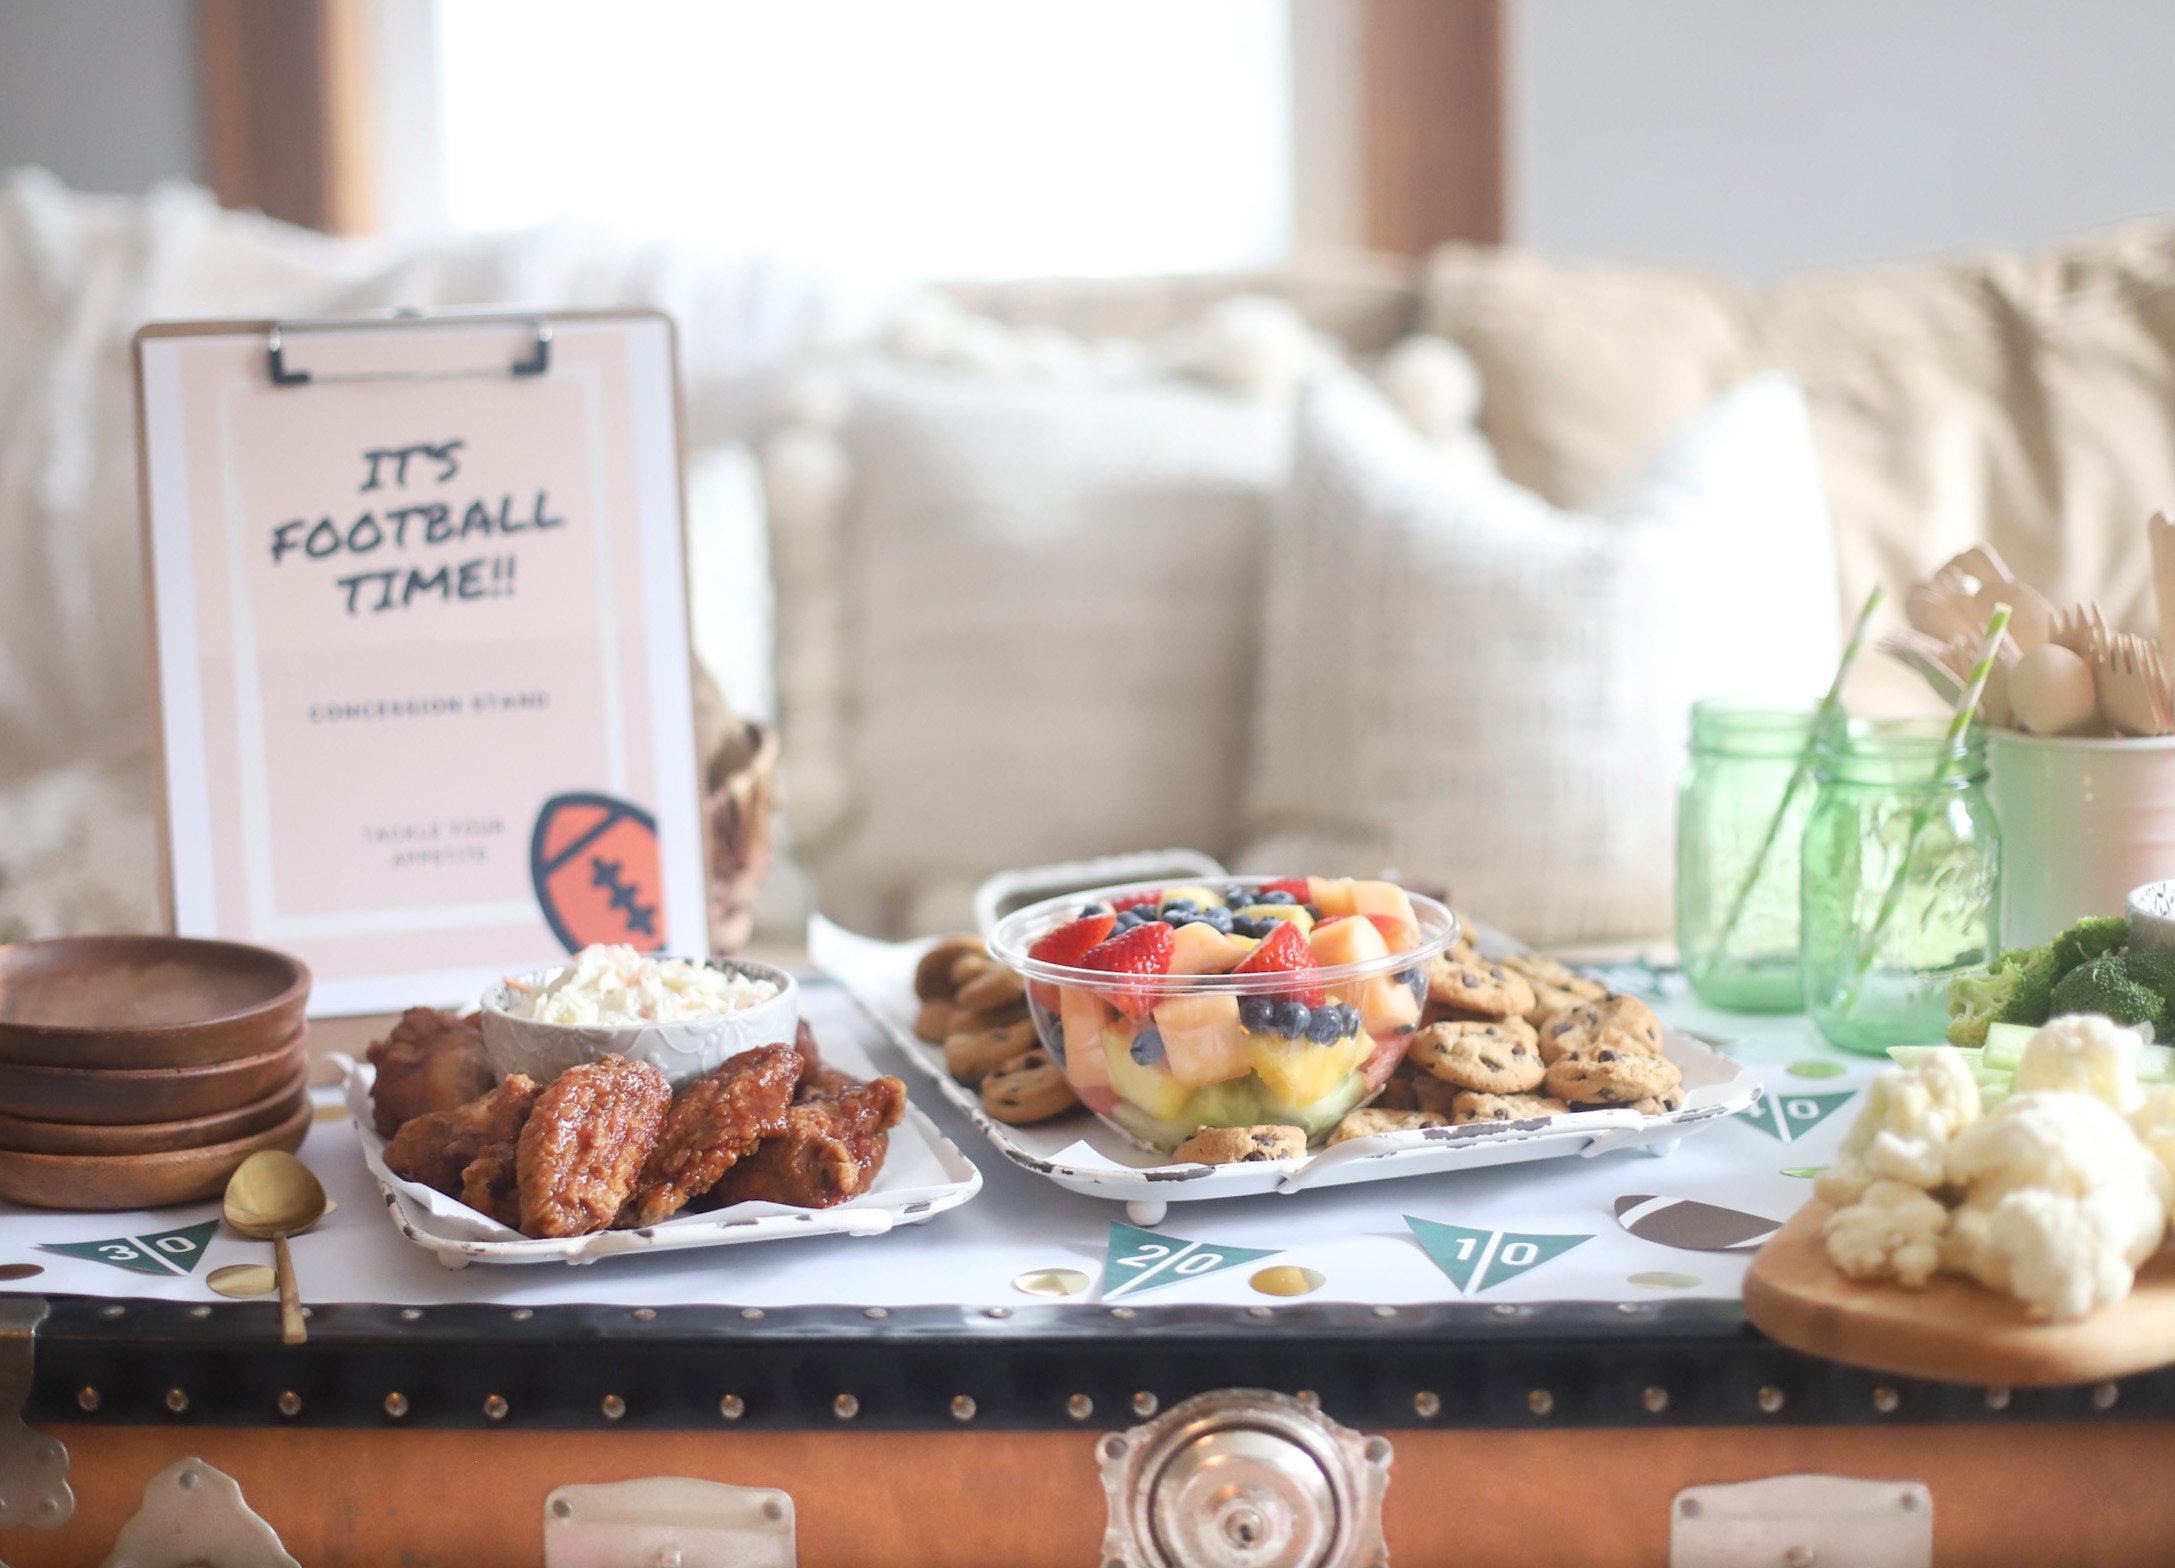 Celebrate This football season by throwing an easy gameday party at home. Watch the game with these simple BIG GAME party tips, football party decoration ideas, and the yummiest game day snacks - no cooking required. | @glitterinclexi | GLITTERINC.COM